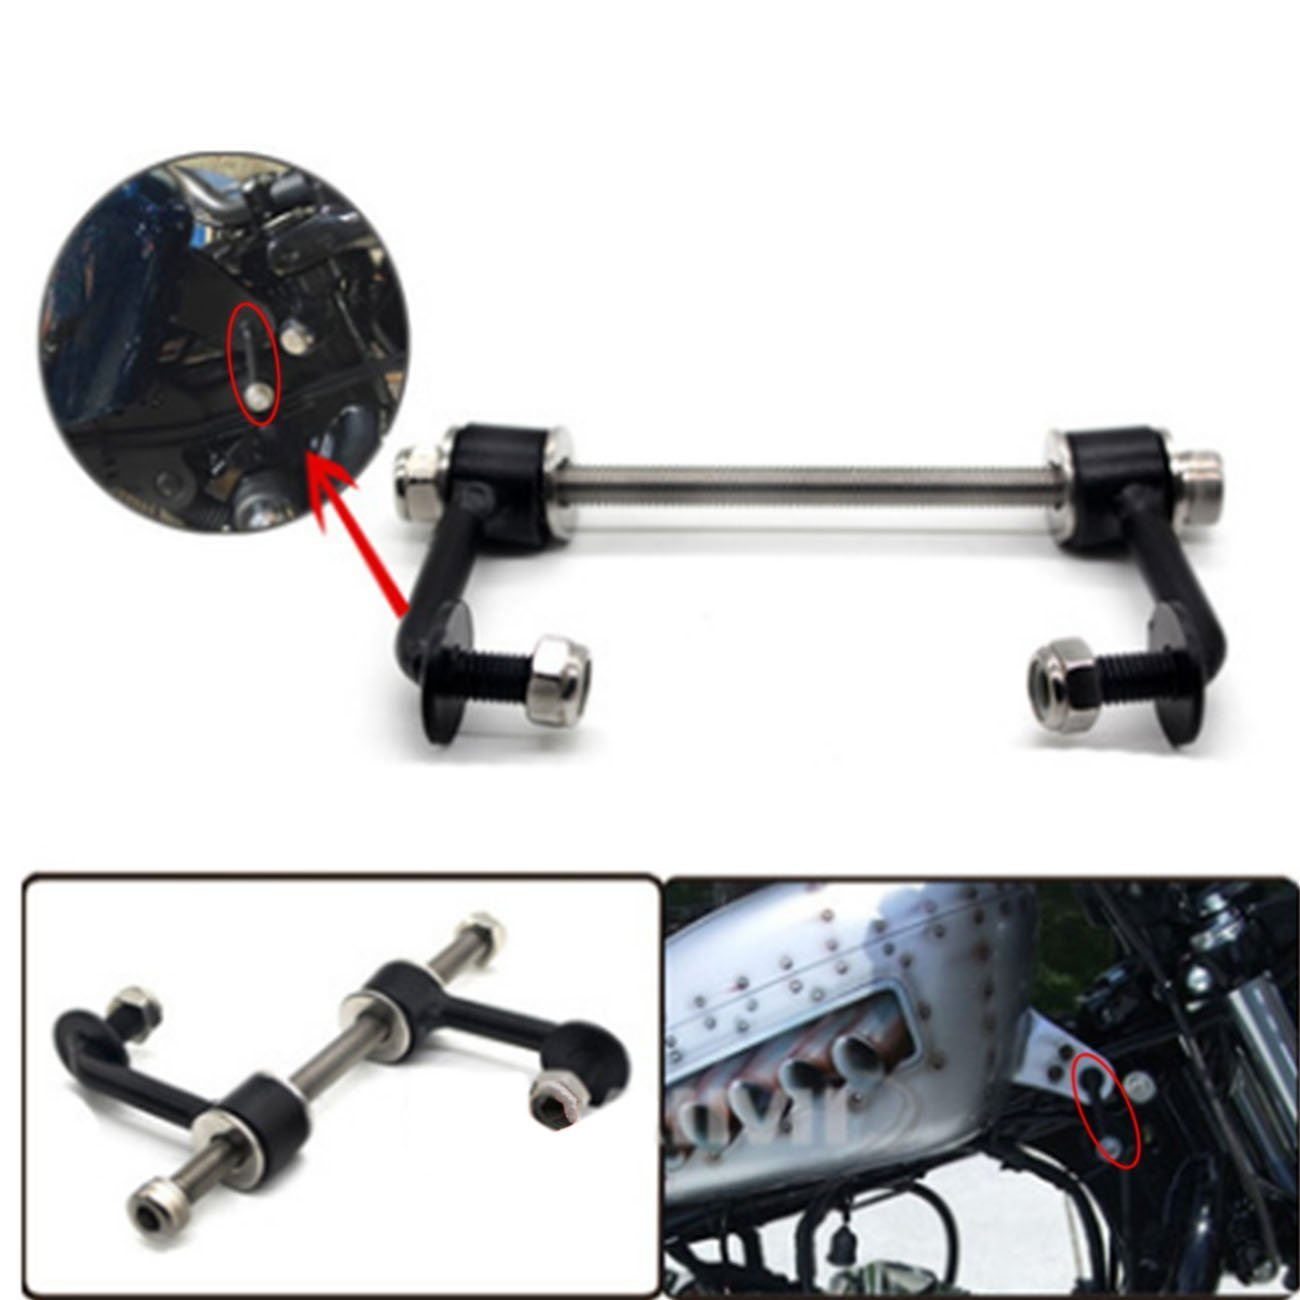 Durable 2' Tank Lift Kit for Harley Sportster Irons 883 XL Nightsters 1995-UP BOXWELOVE